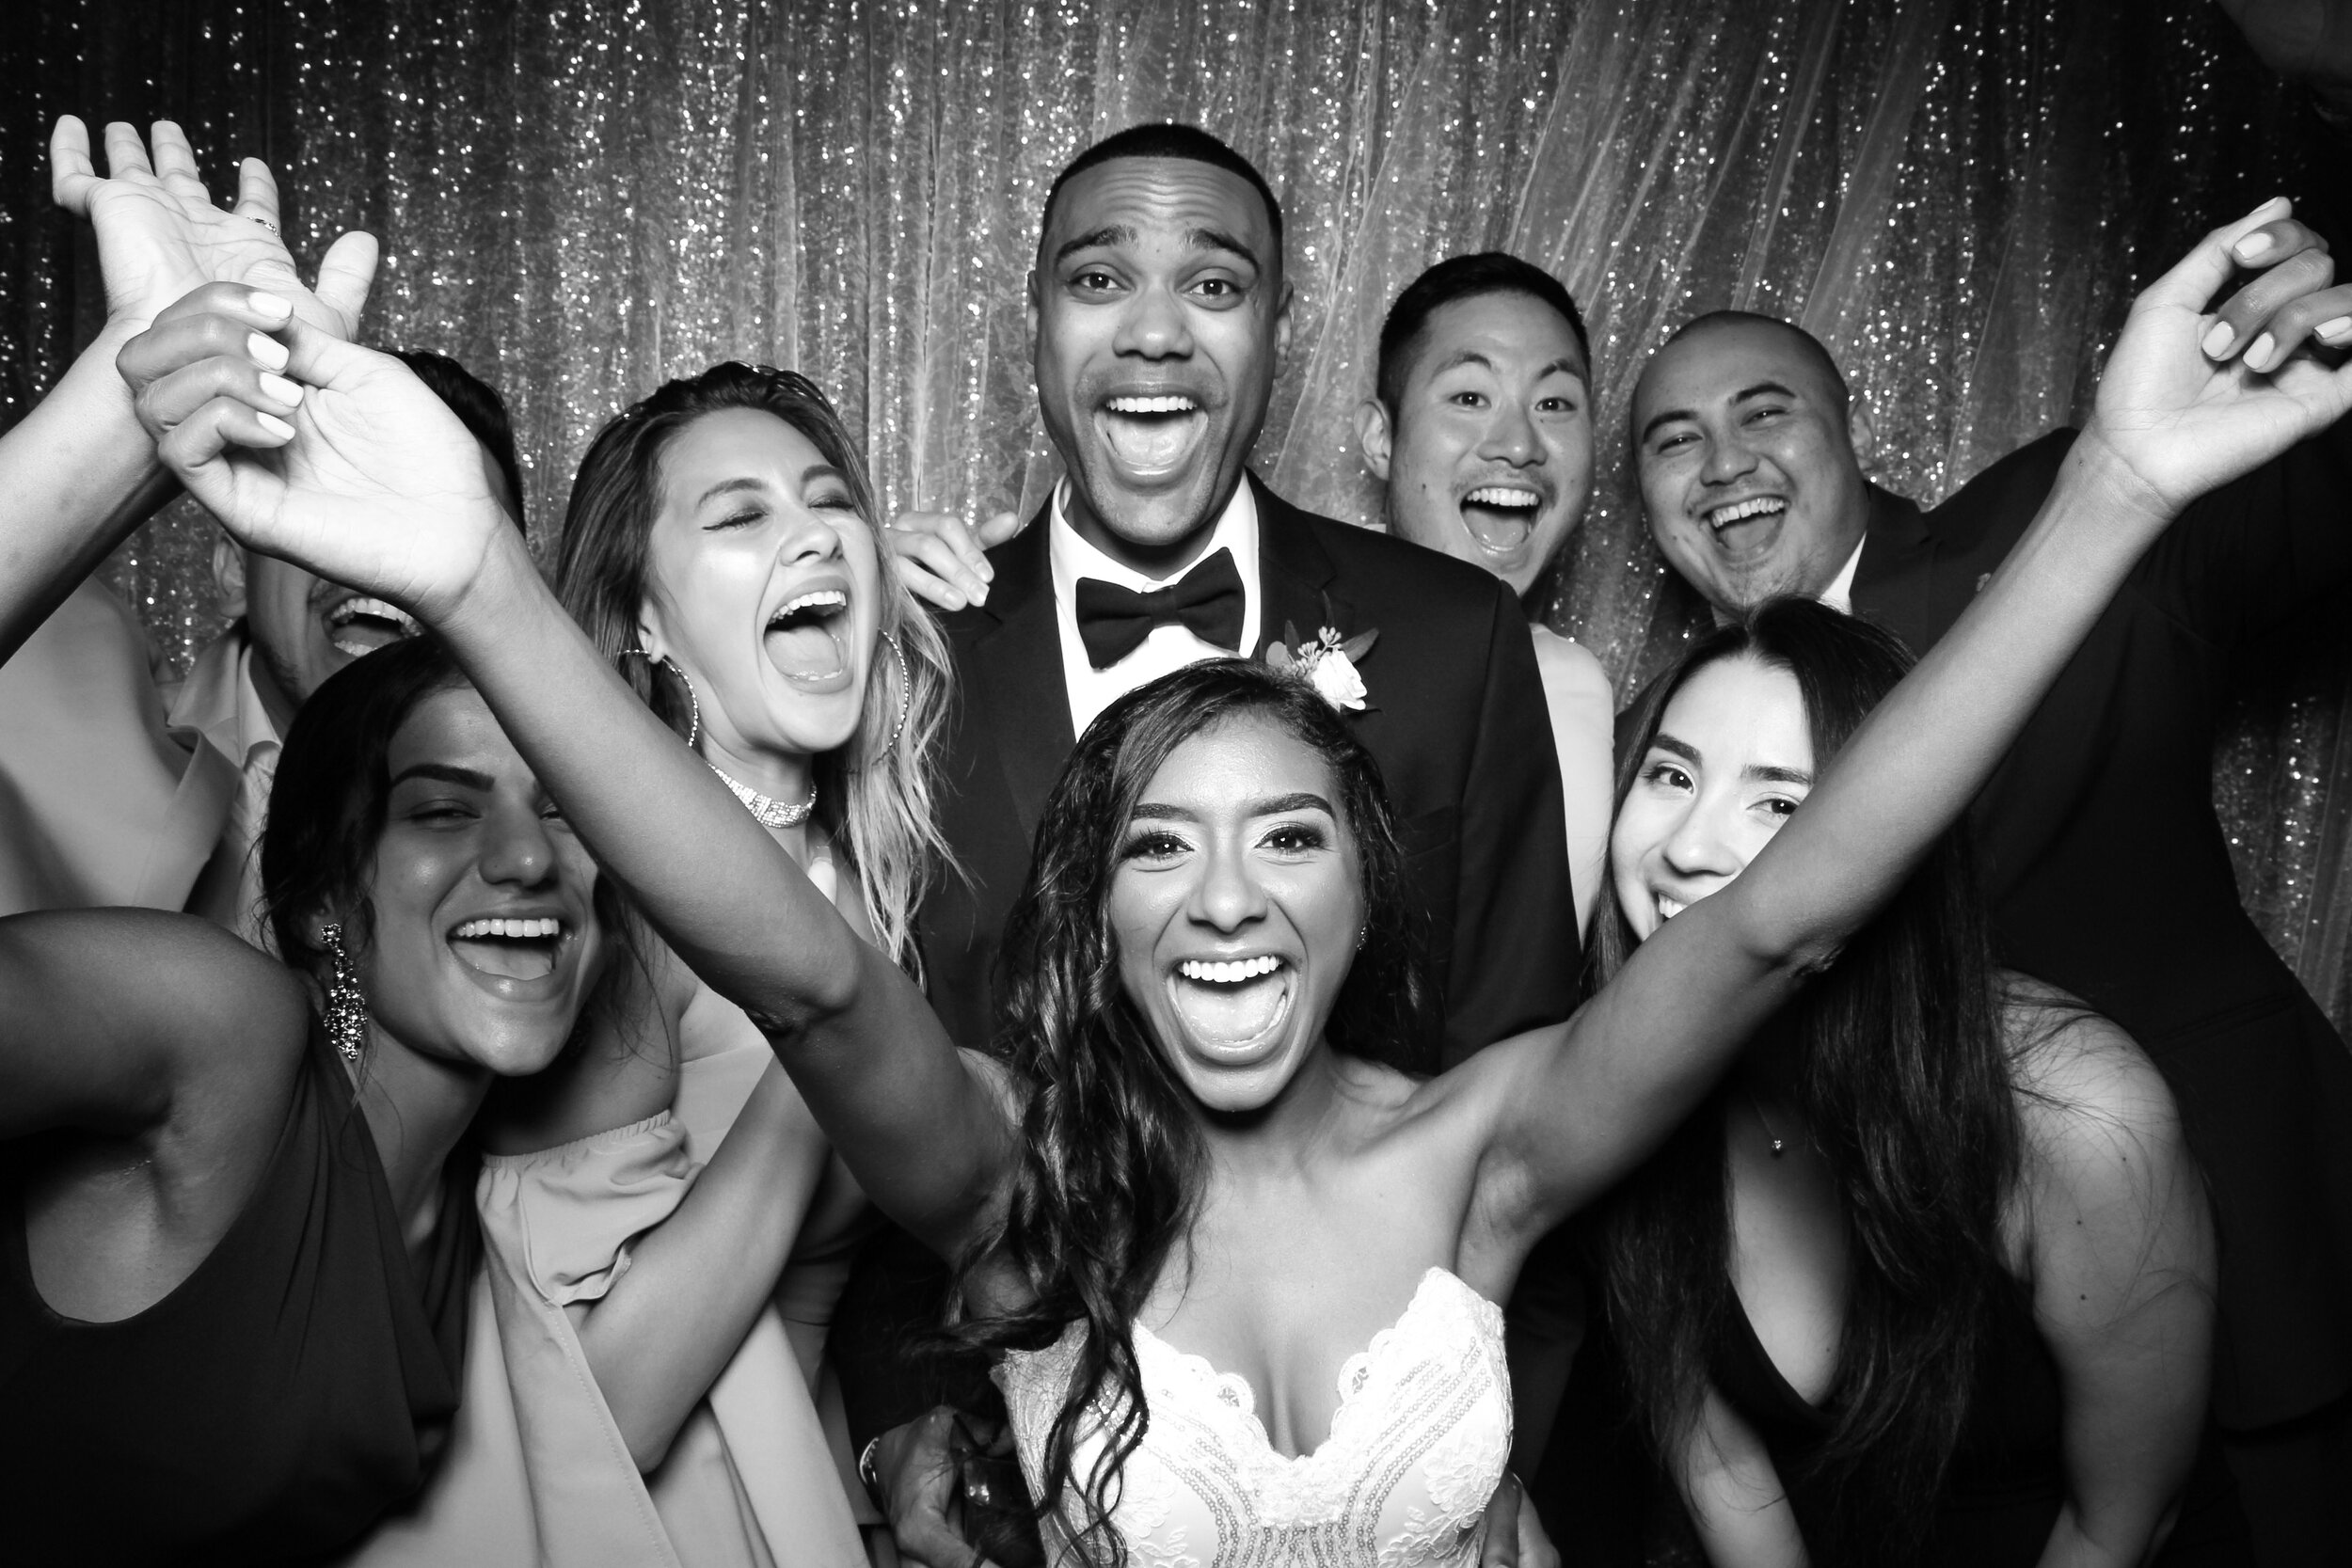 Ravisloe_Country_Club_Wedding_Photo_Booth_21.jpg